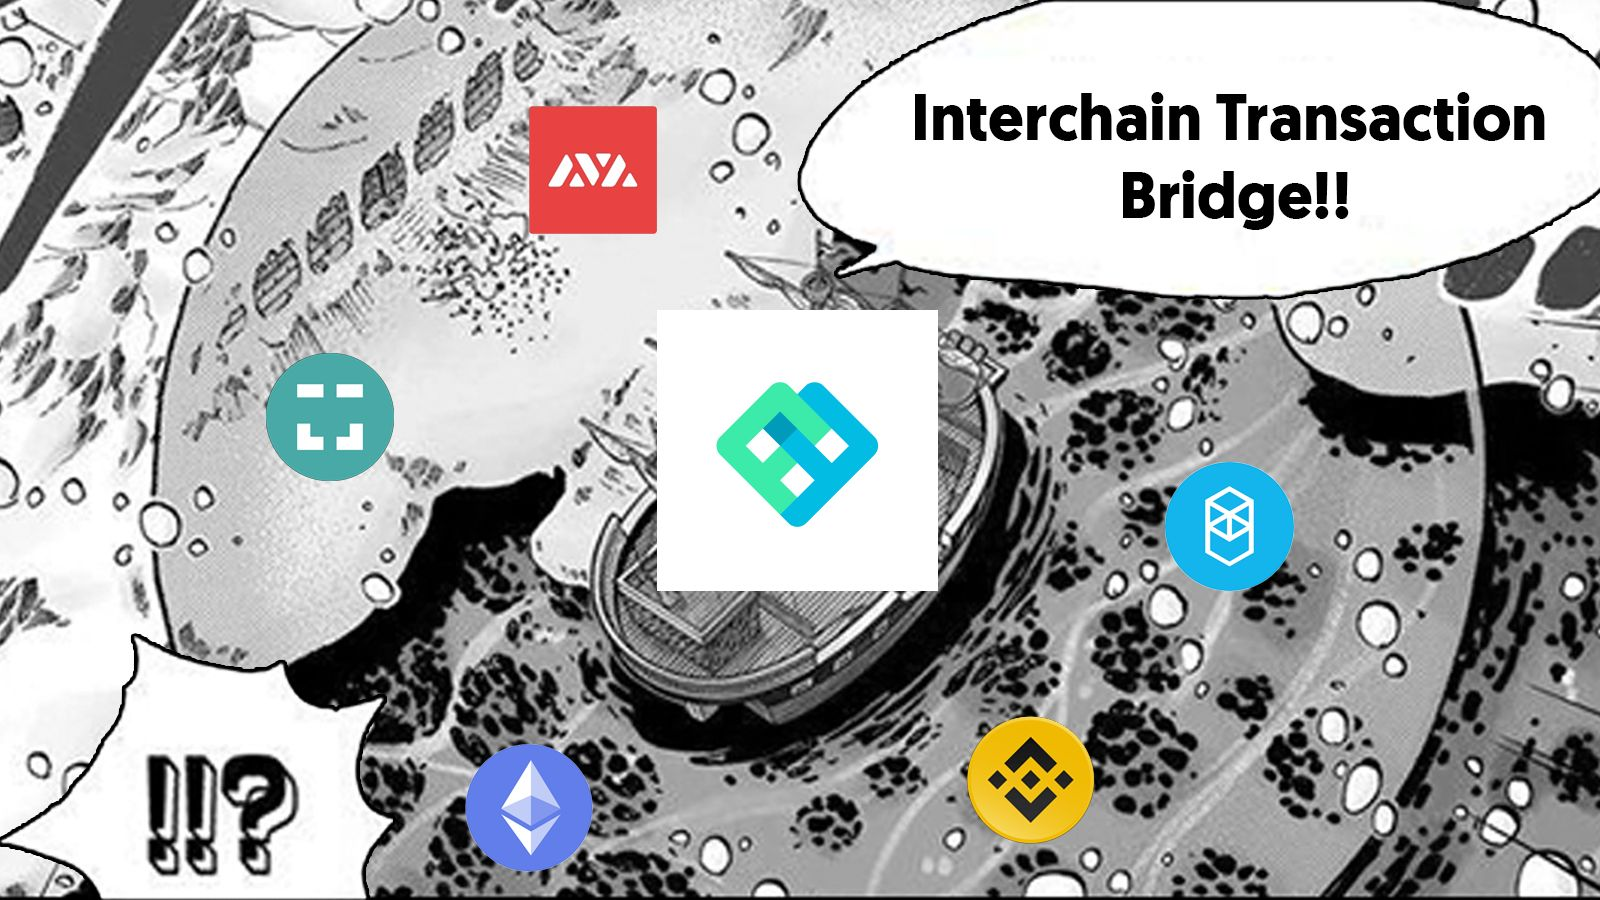 /interchain-transaction-bridge-the-missing-key-to-creating-seamless-ux-in-a-multi-chain-universe-xoi3351 feature image